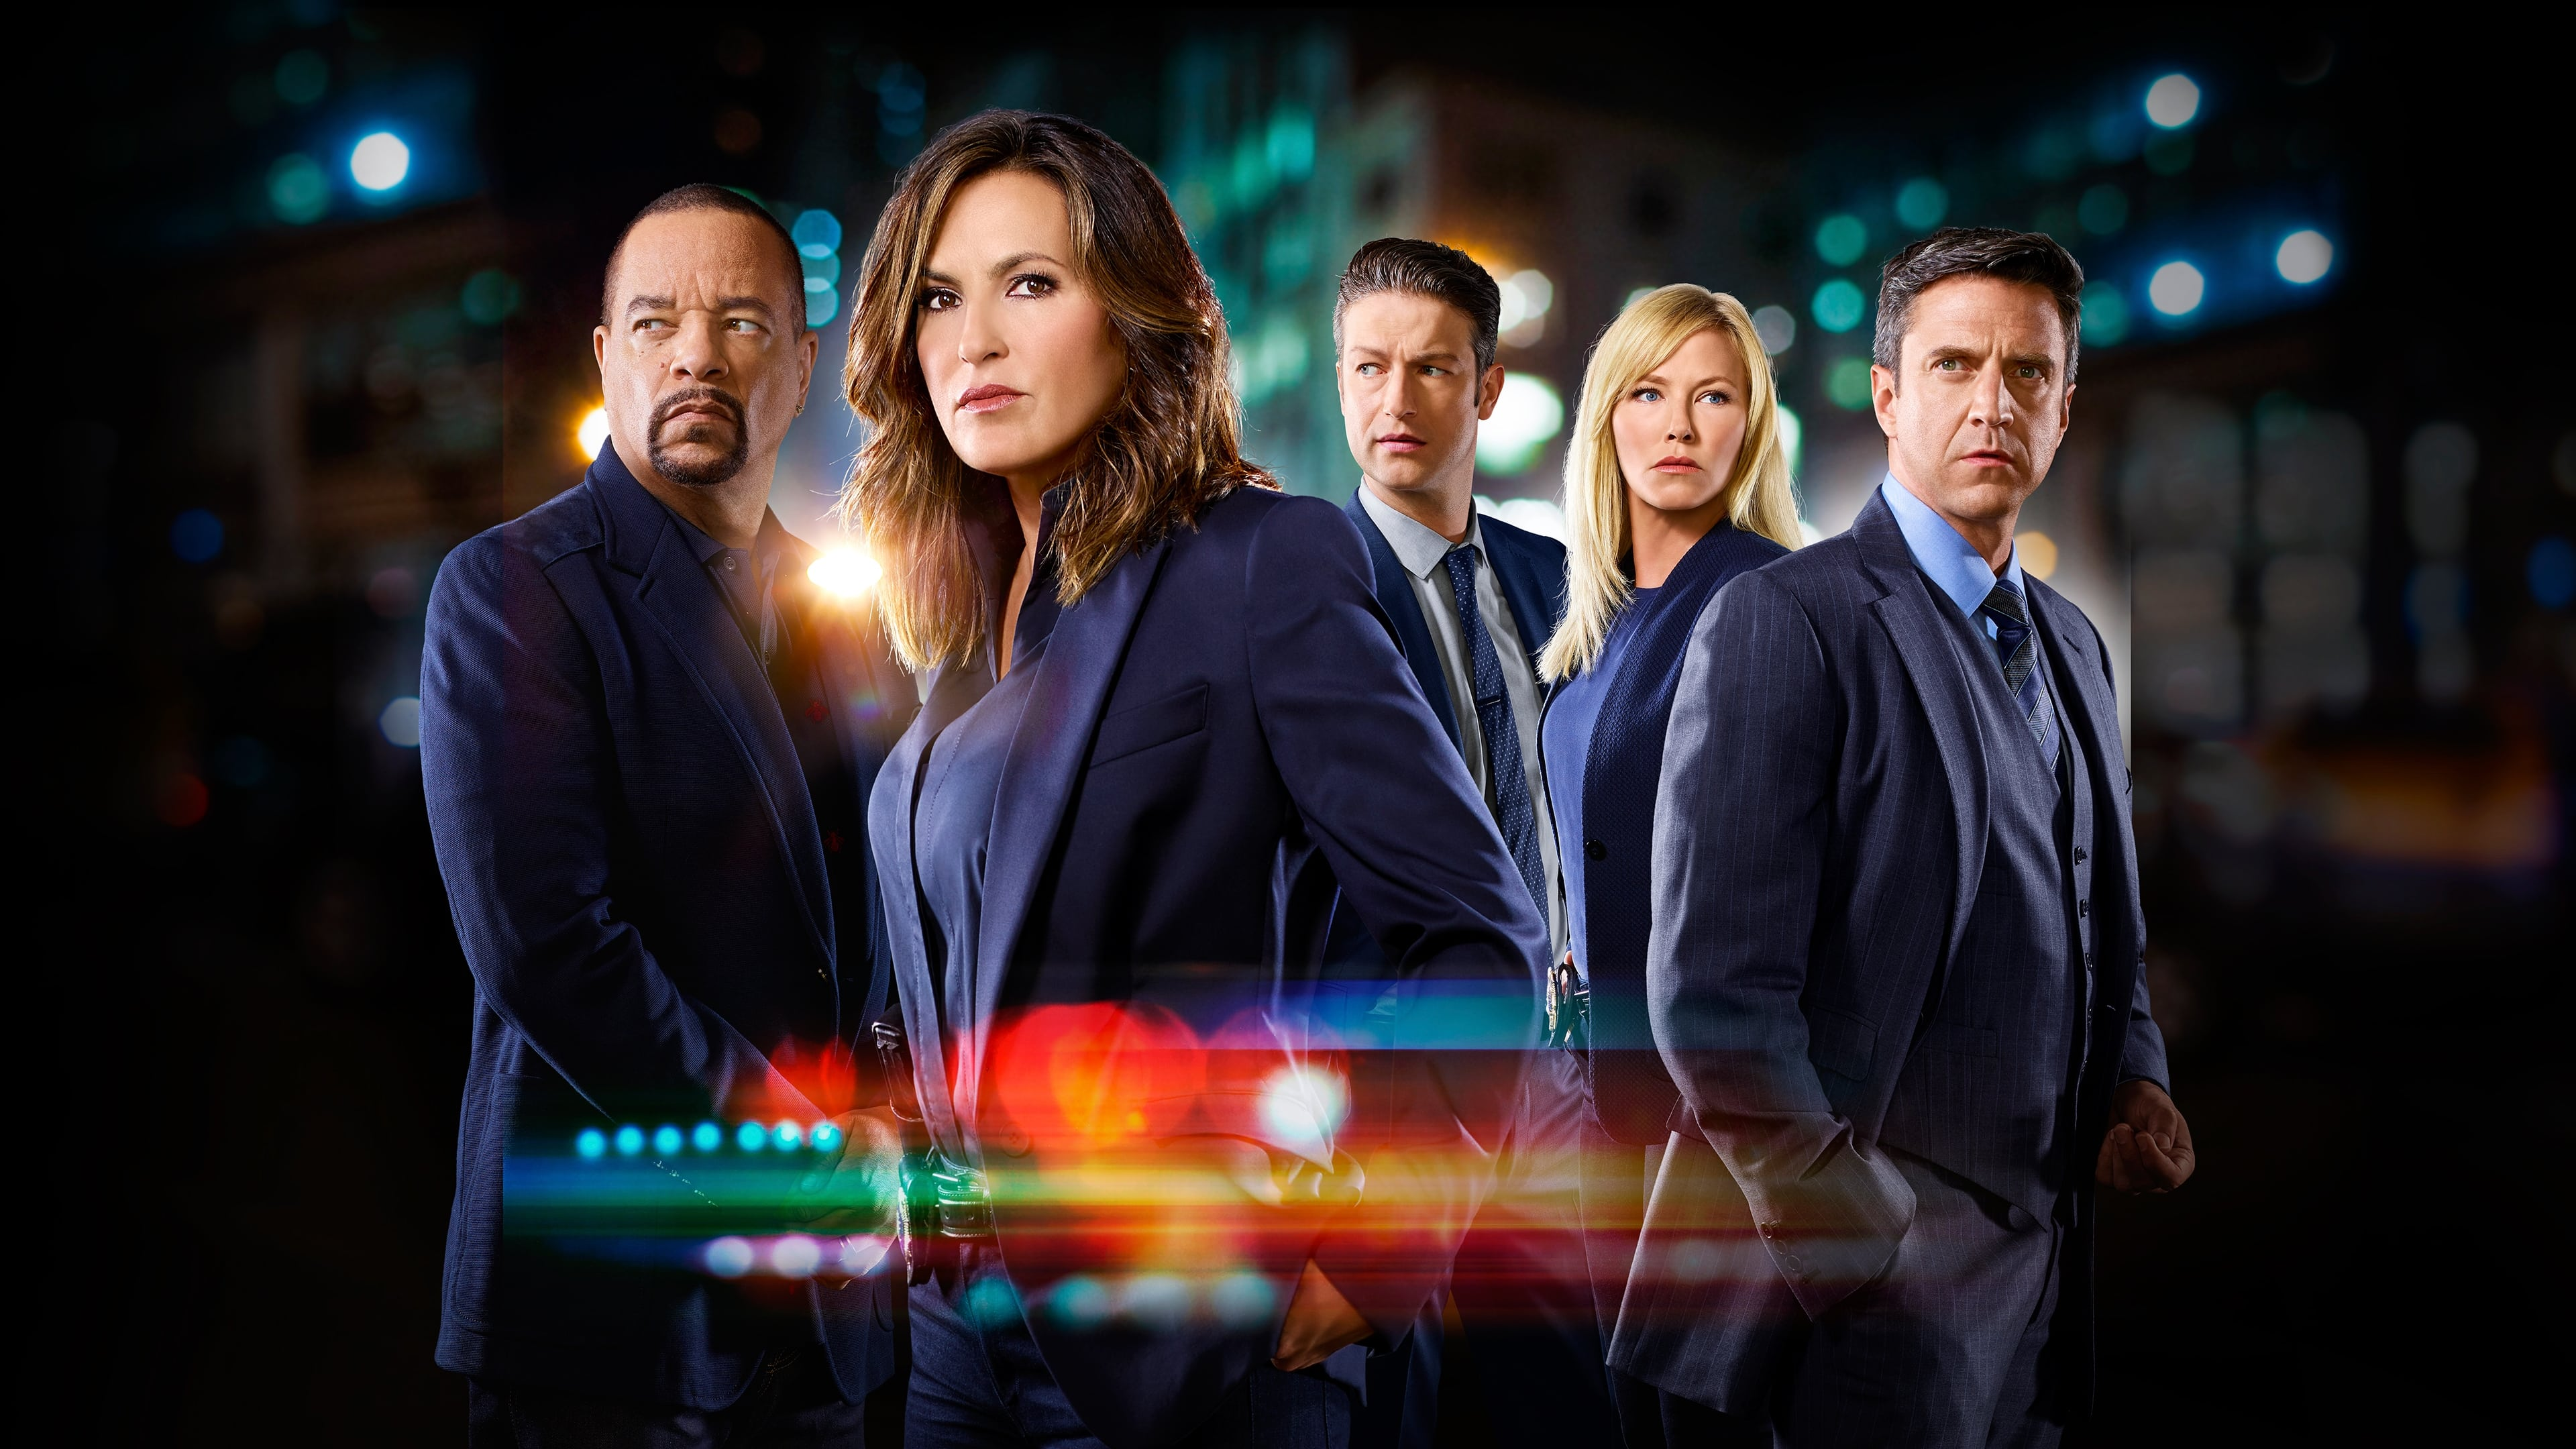 Law & Order: Special Victims Unit - Season 6 Episode 12 : Identity